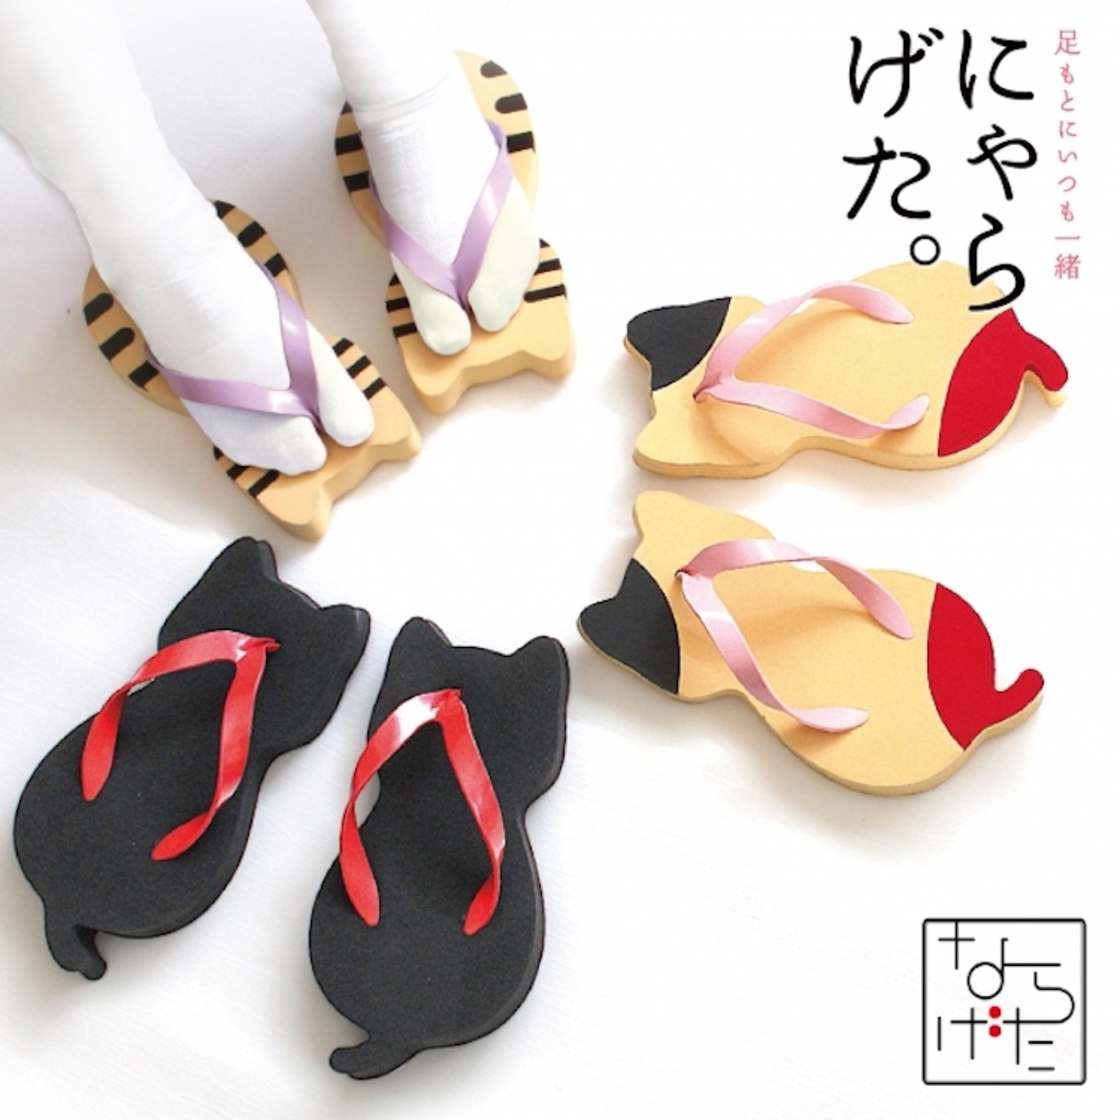 Nyarageta - Some cute Japanese flip-flops shaped as cats